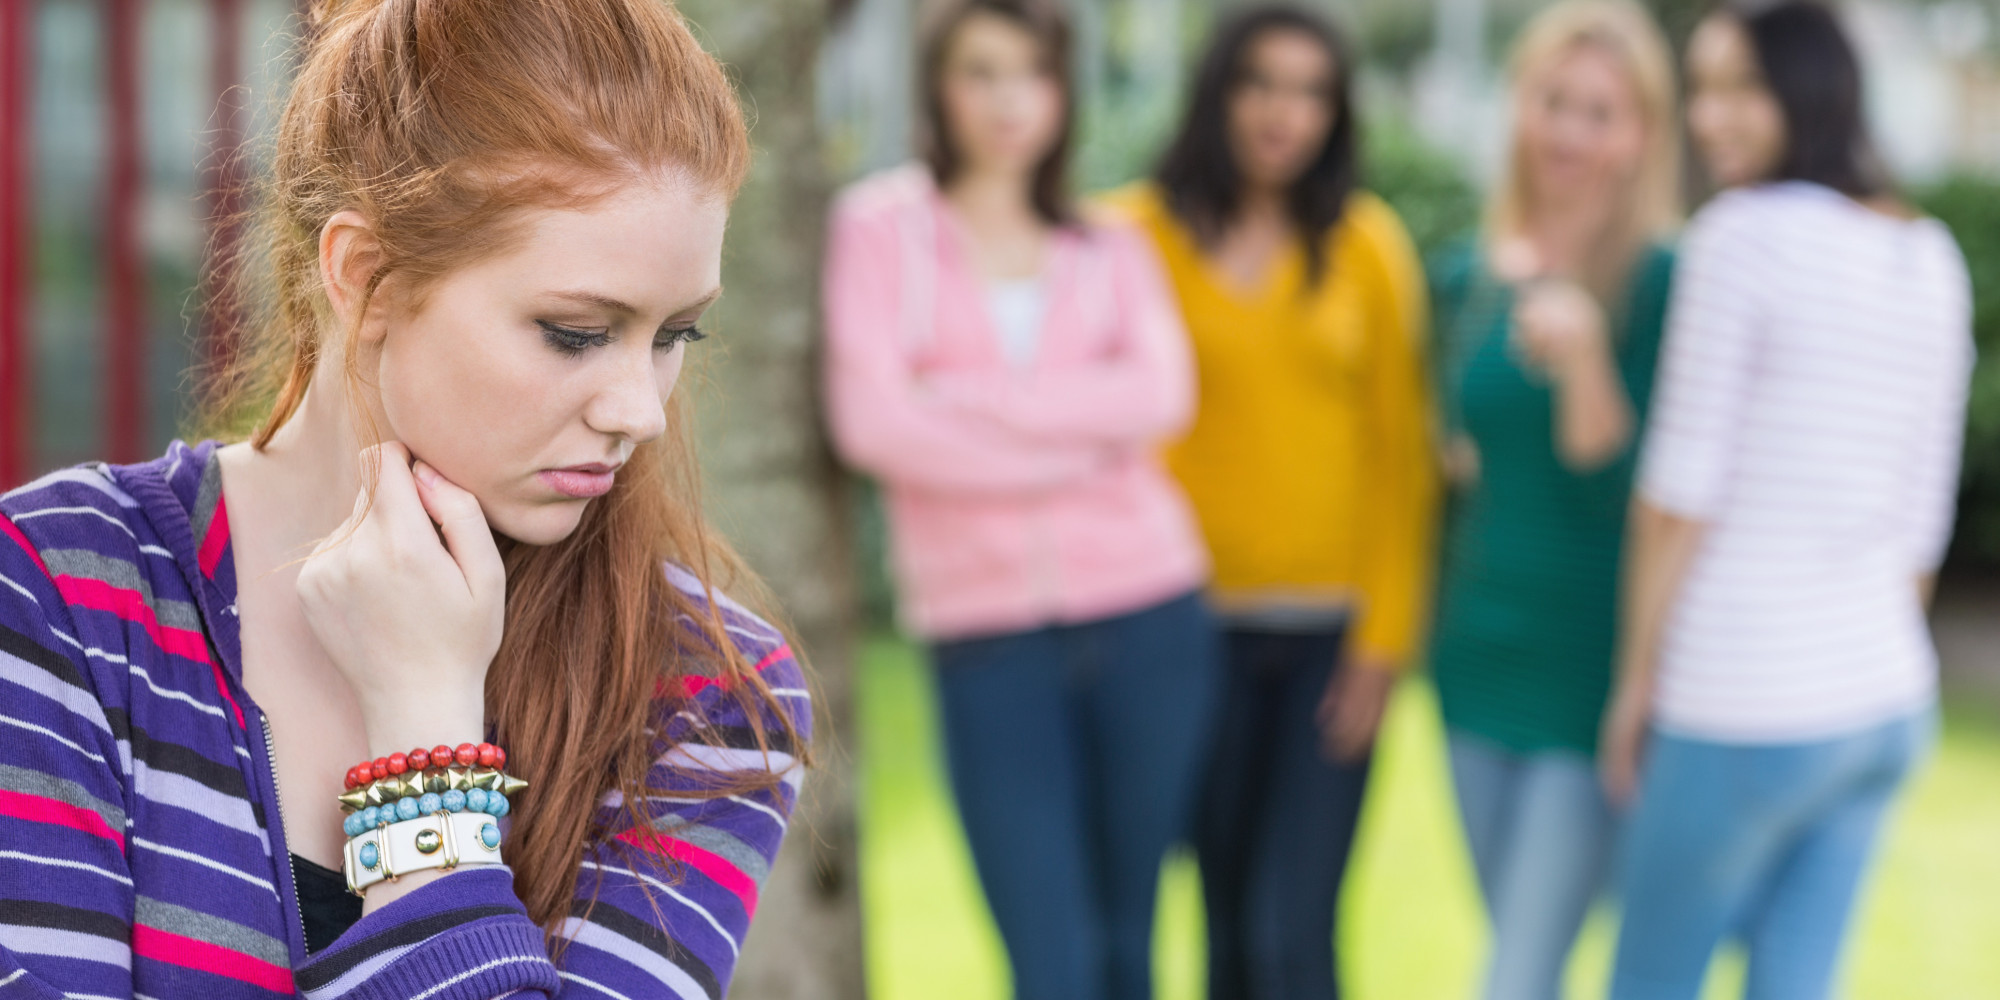 How to Deal with Name Calling Bullies recommend